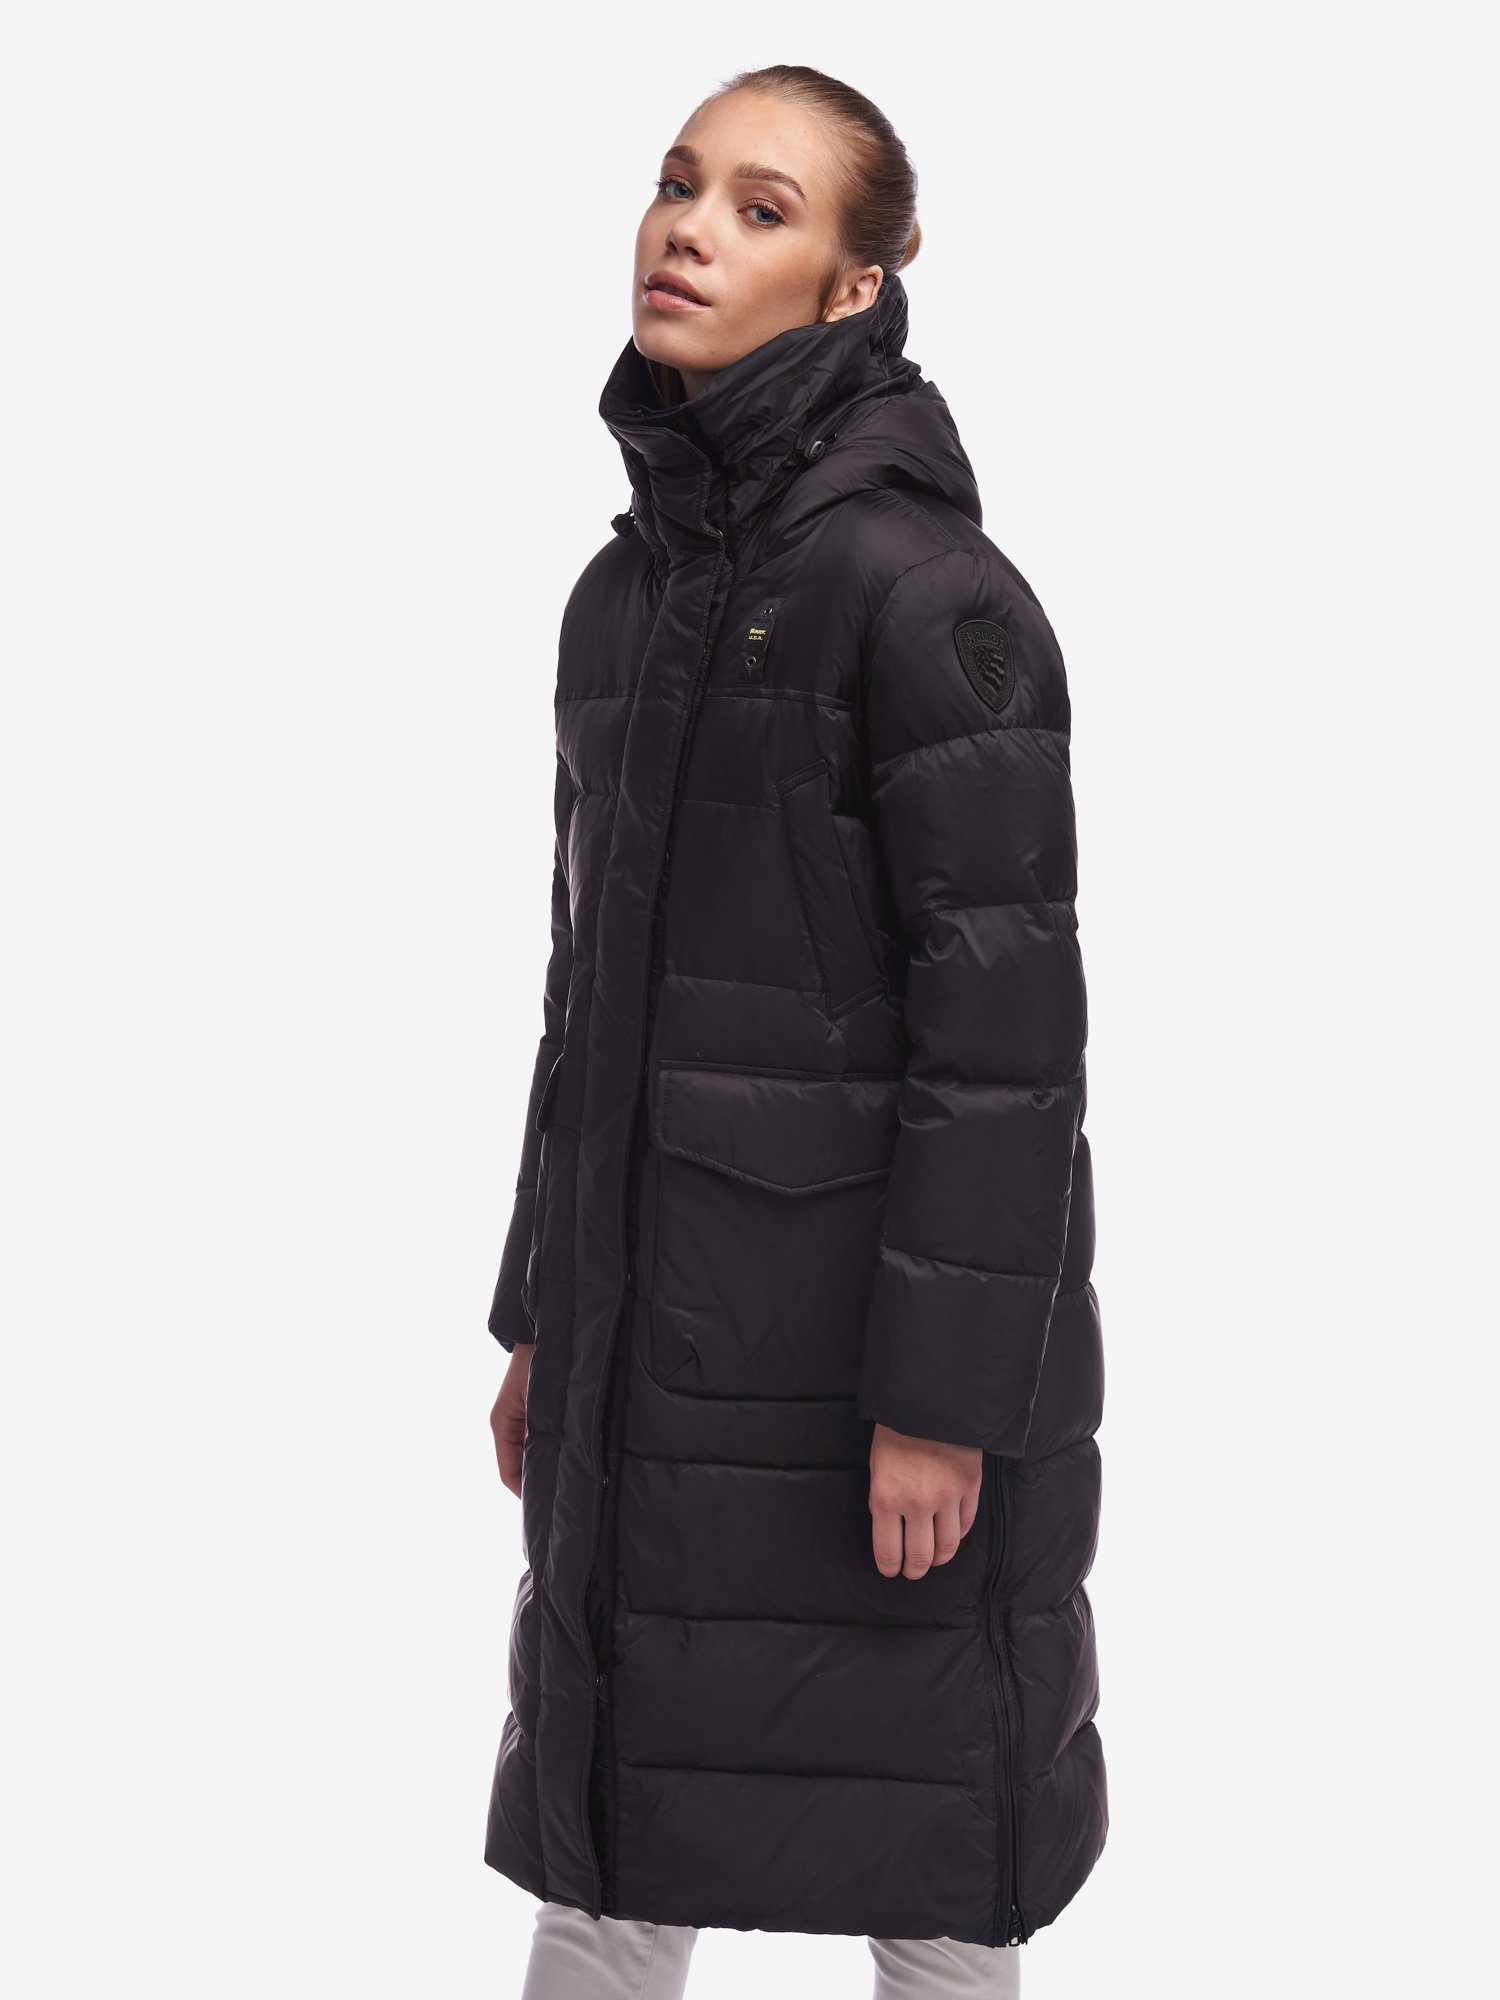 LOWE LONG DOWN JACKET WITH SLITS AND WITHOUT FUR - Blauer